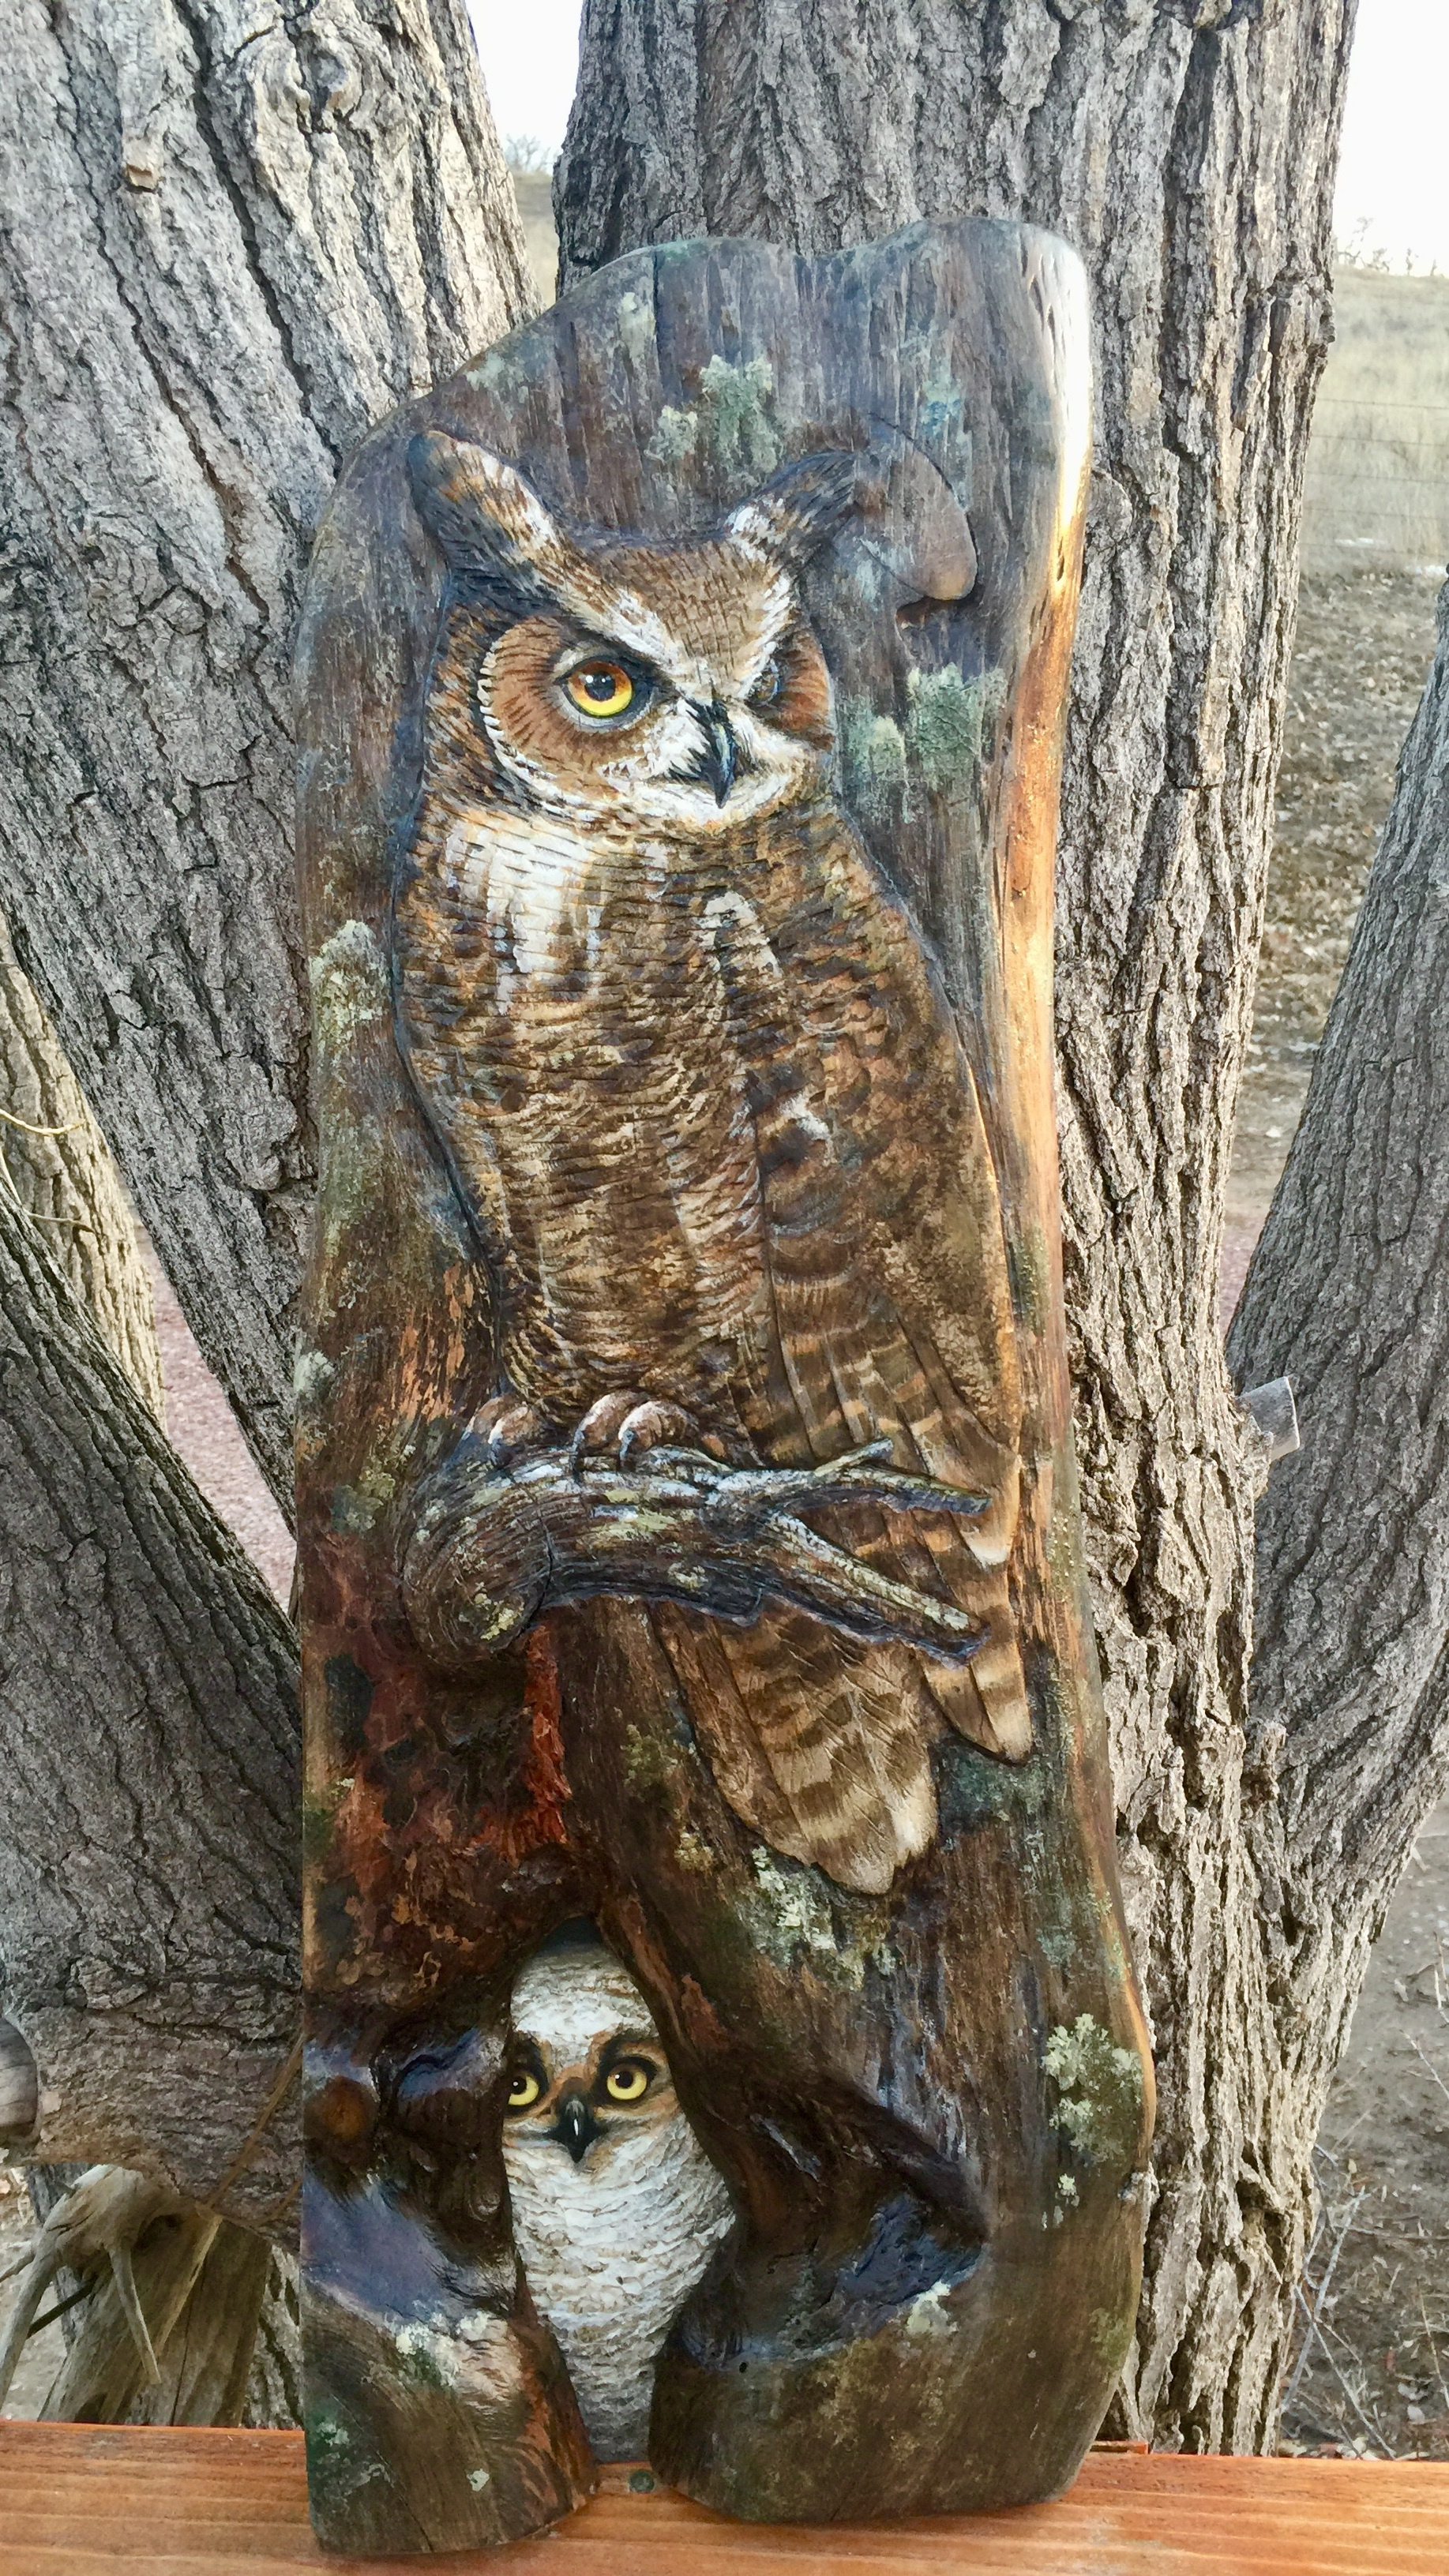 Great Horned Owl's on wood - by ©Liz Goodrick-Dillon